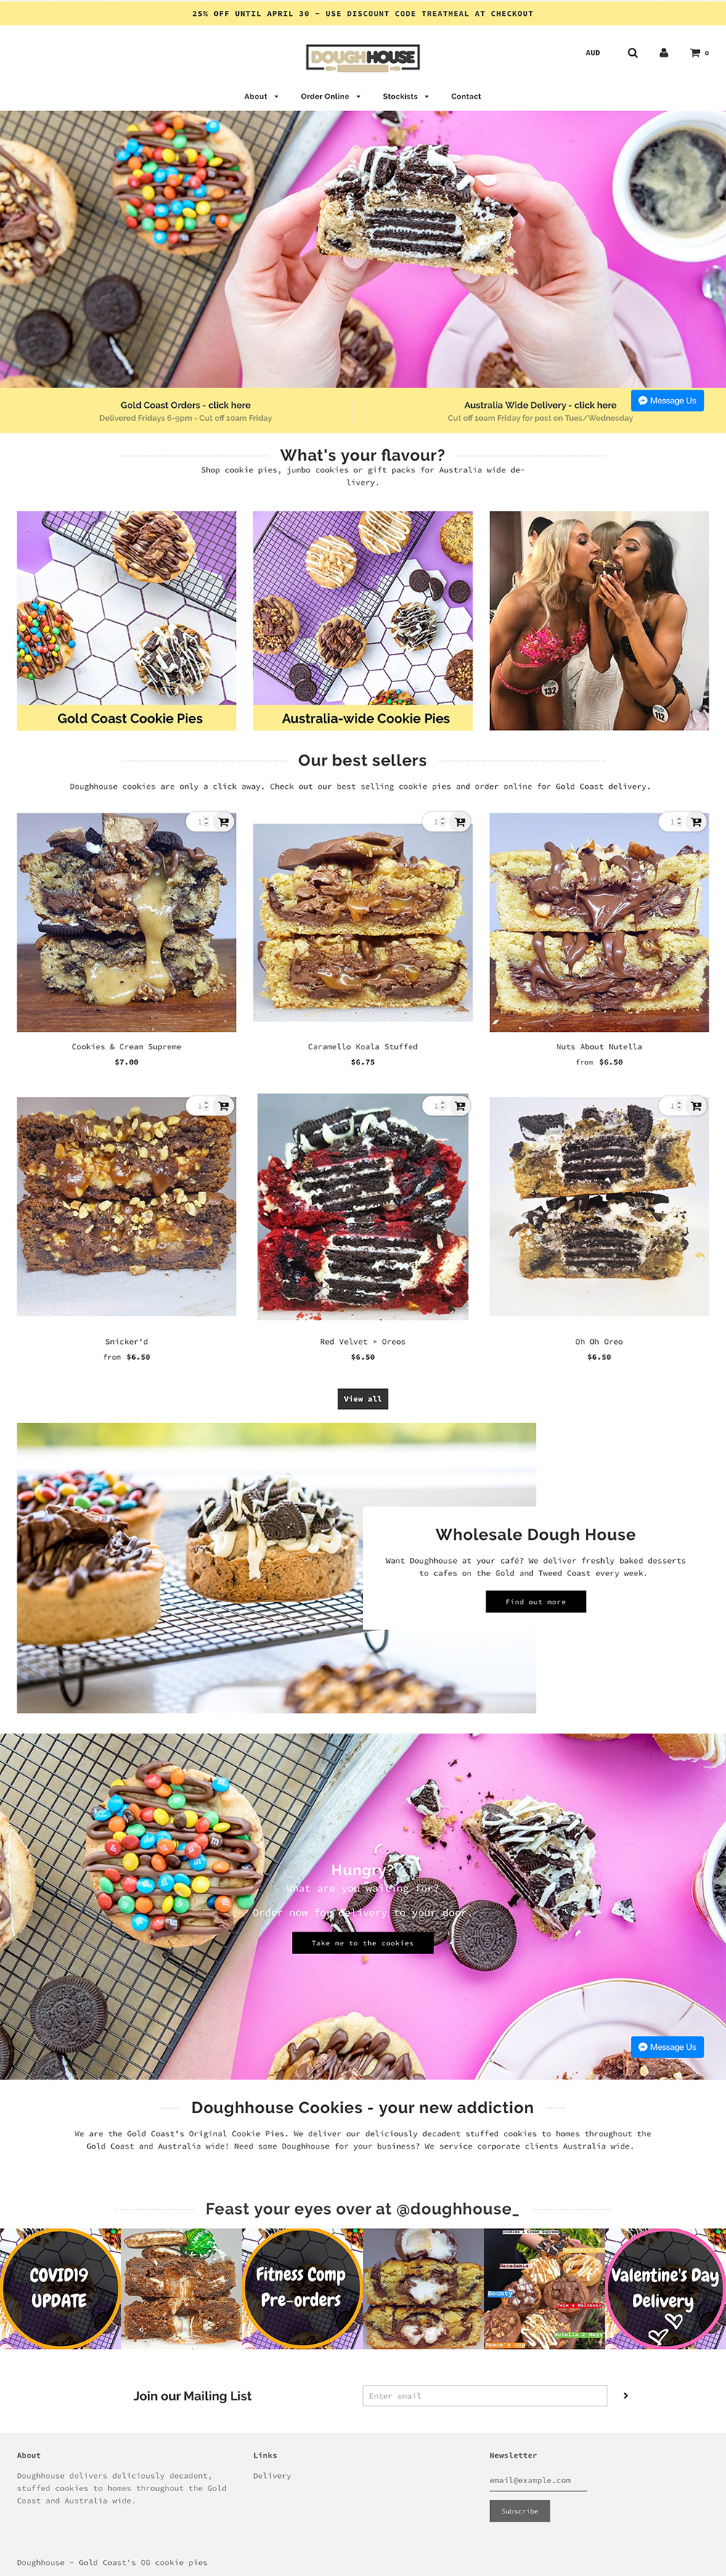 DoughHouse Website Redesign by Little Palm Creative Gold Coast